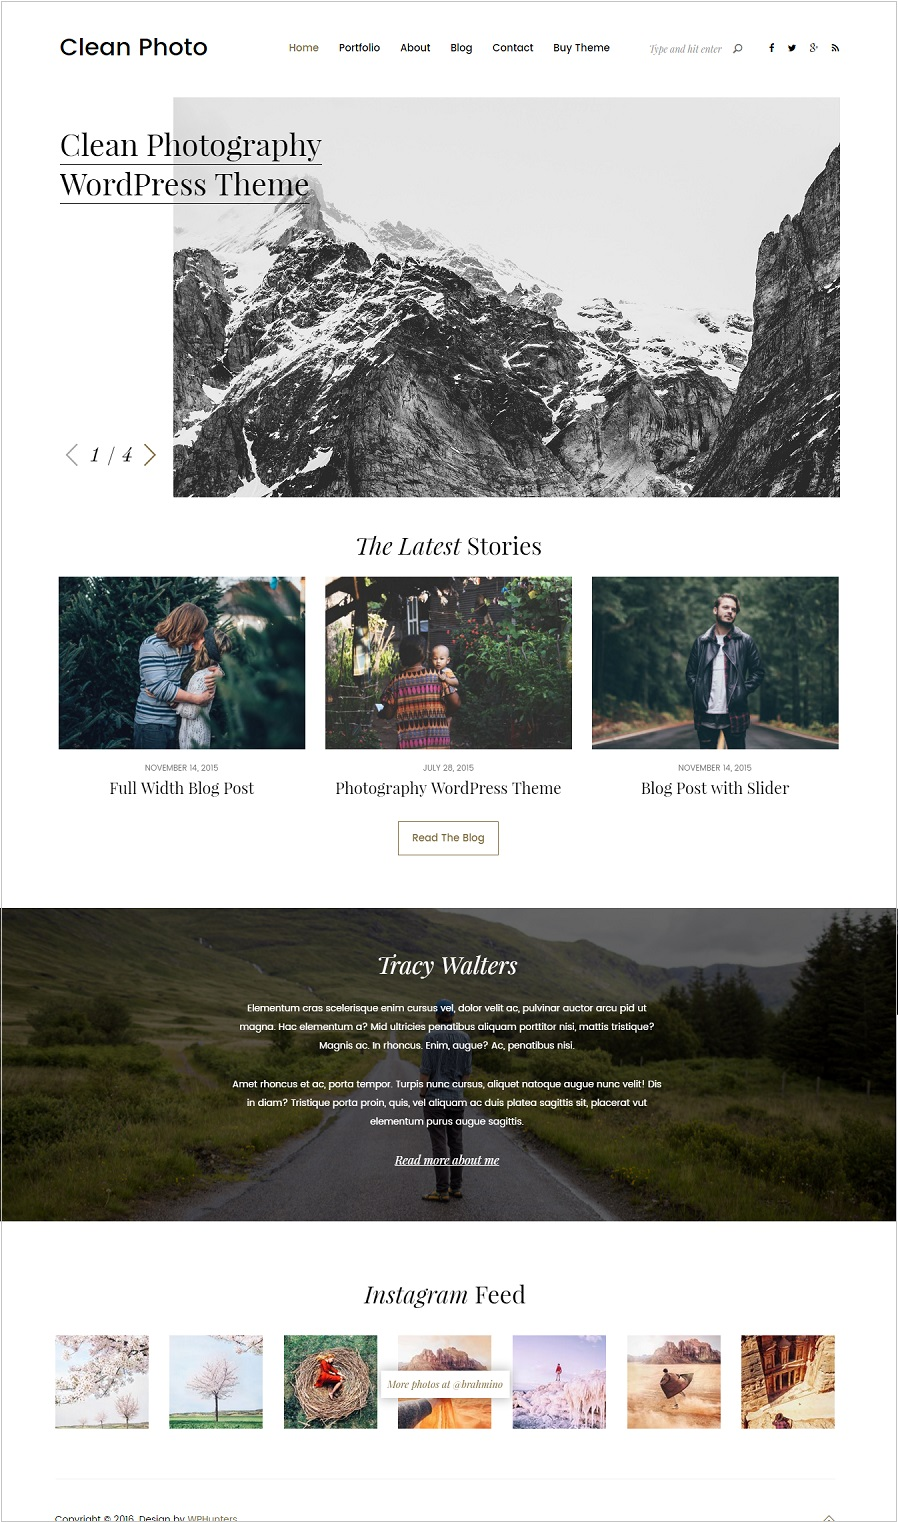 Clean Photo theme is a responsive modern photography WordPress theme